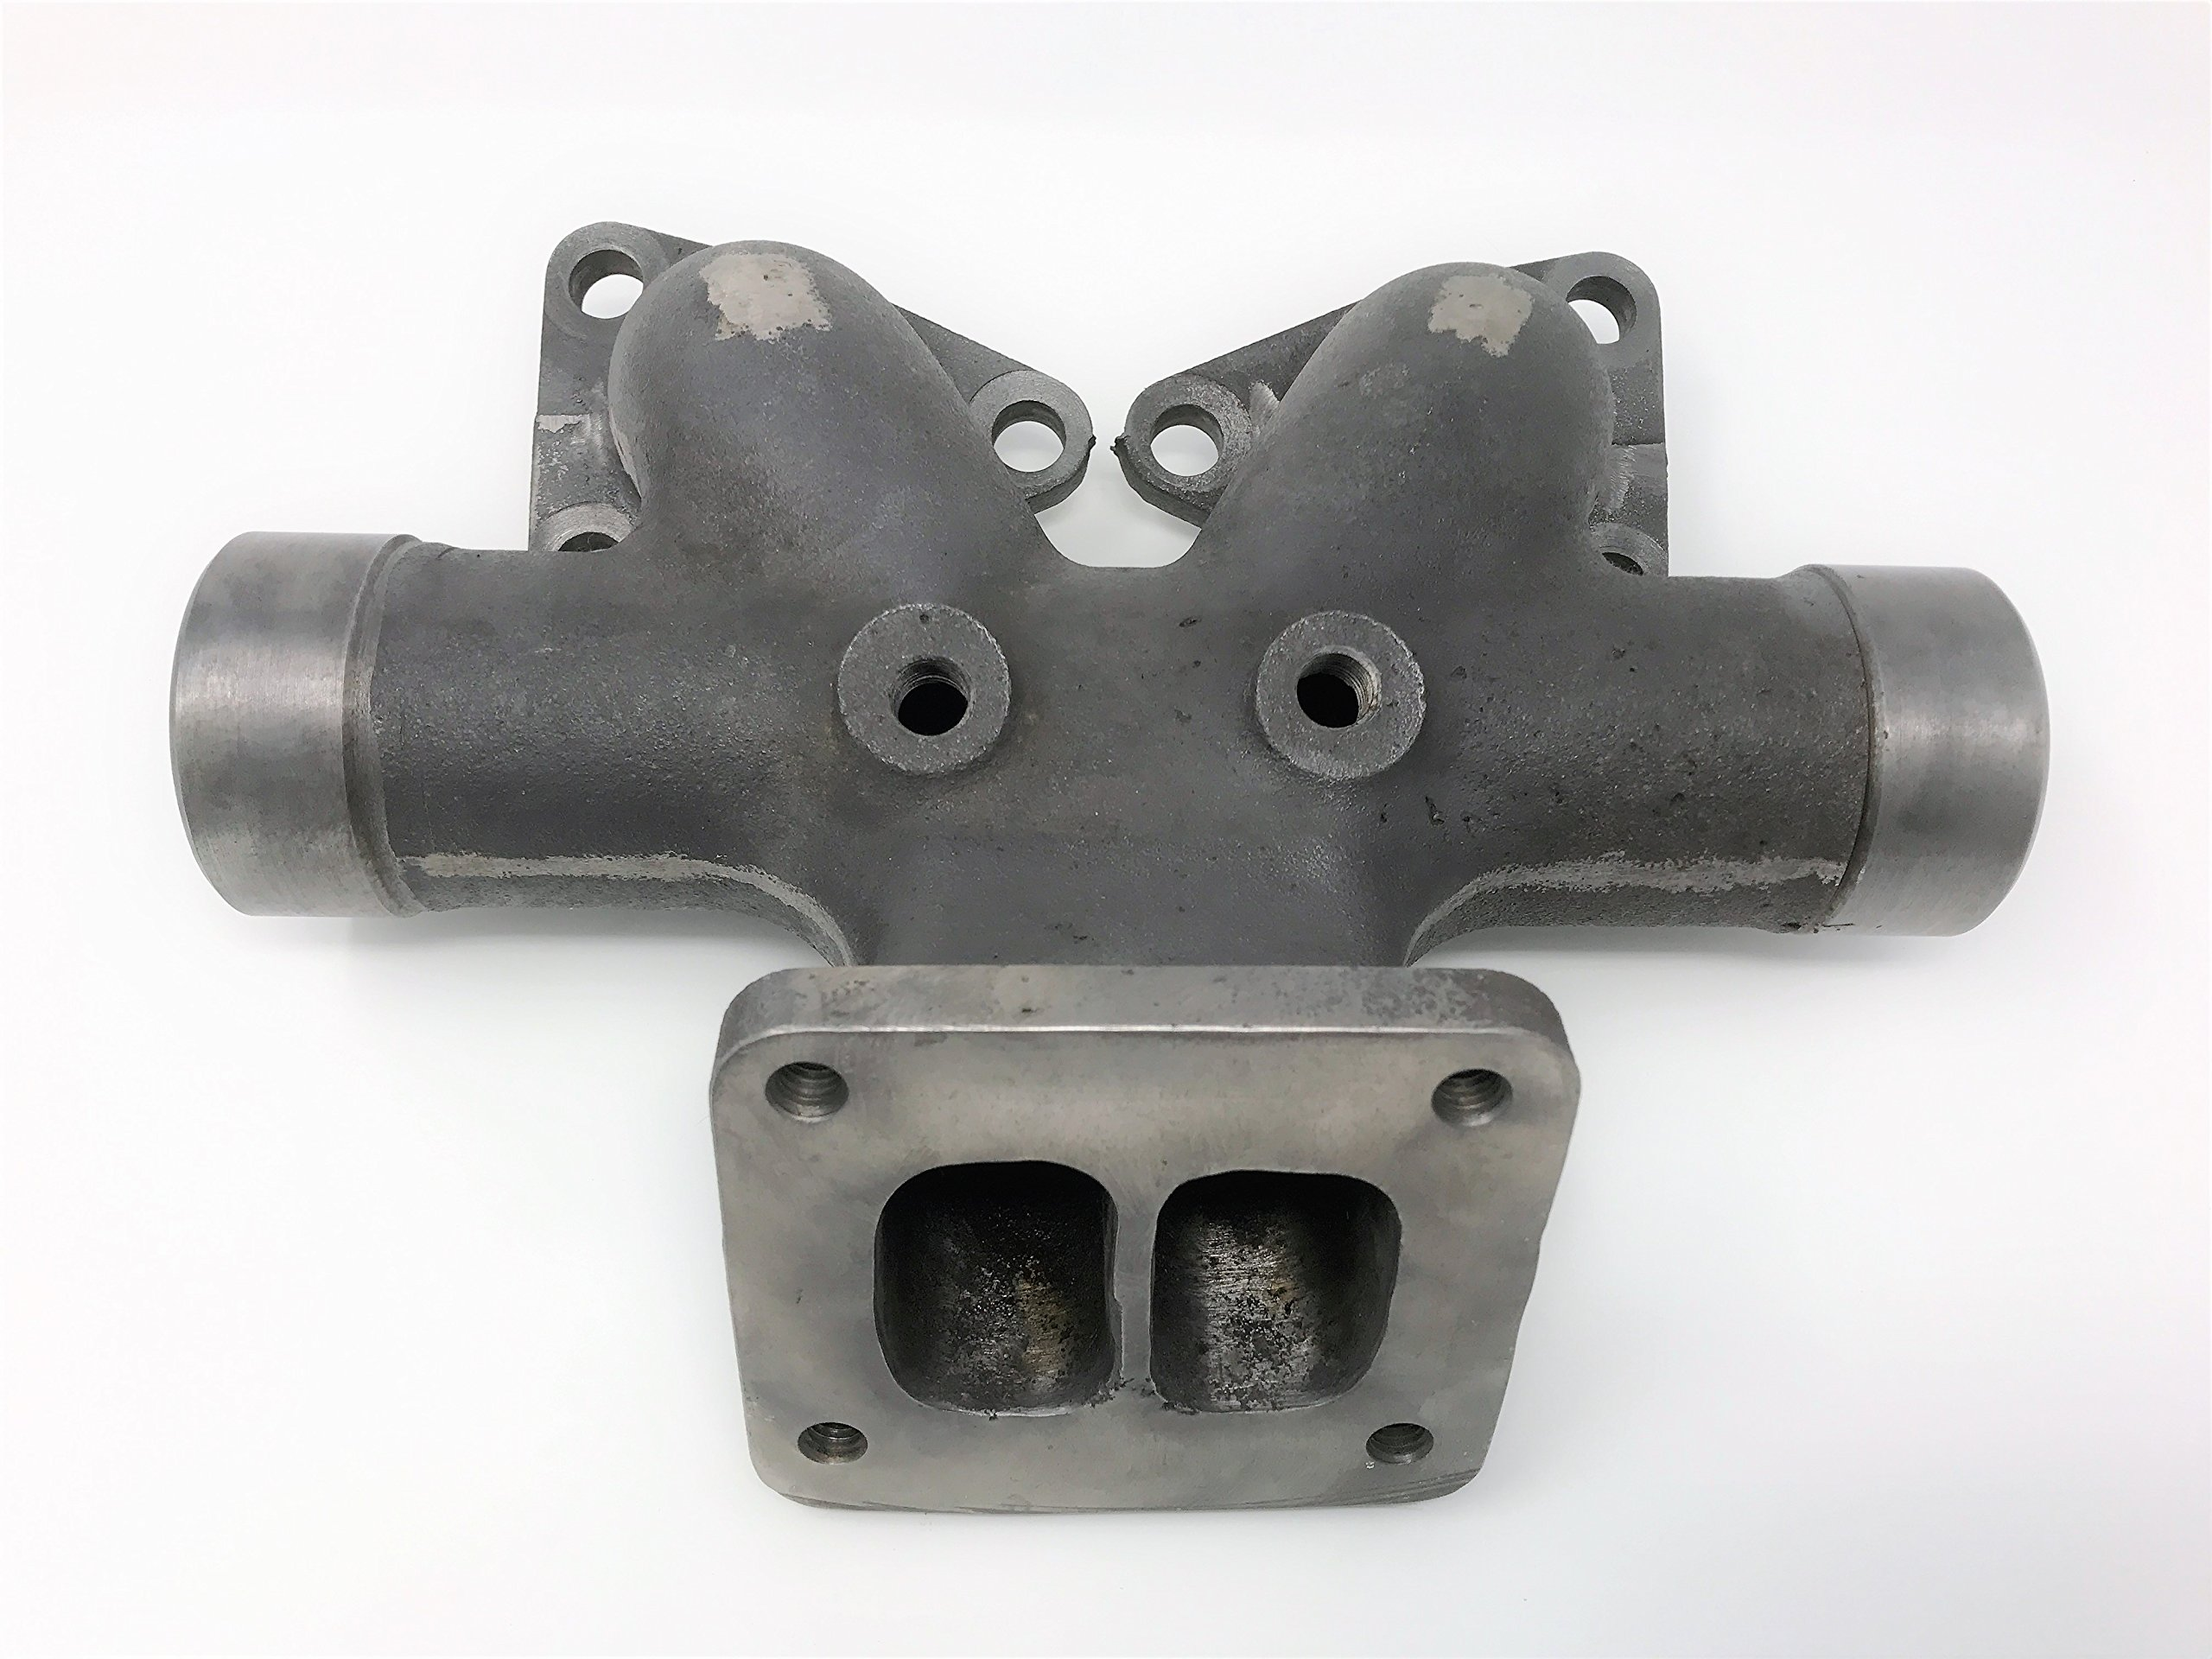 670081C1 Center Exhaust Manifold for Dresser, International, Hough Tractors with DT429 Diesel Engine by FP Smith Parts